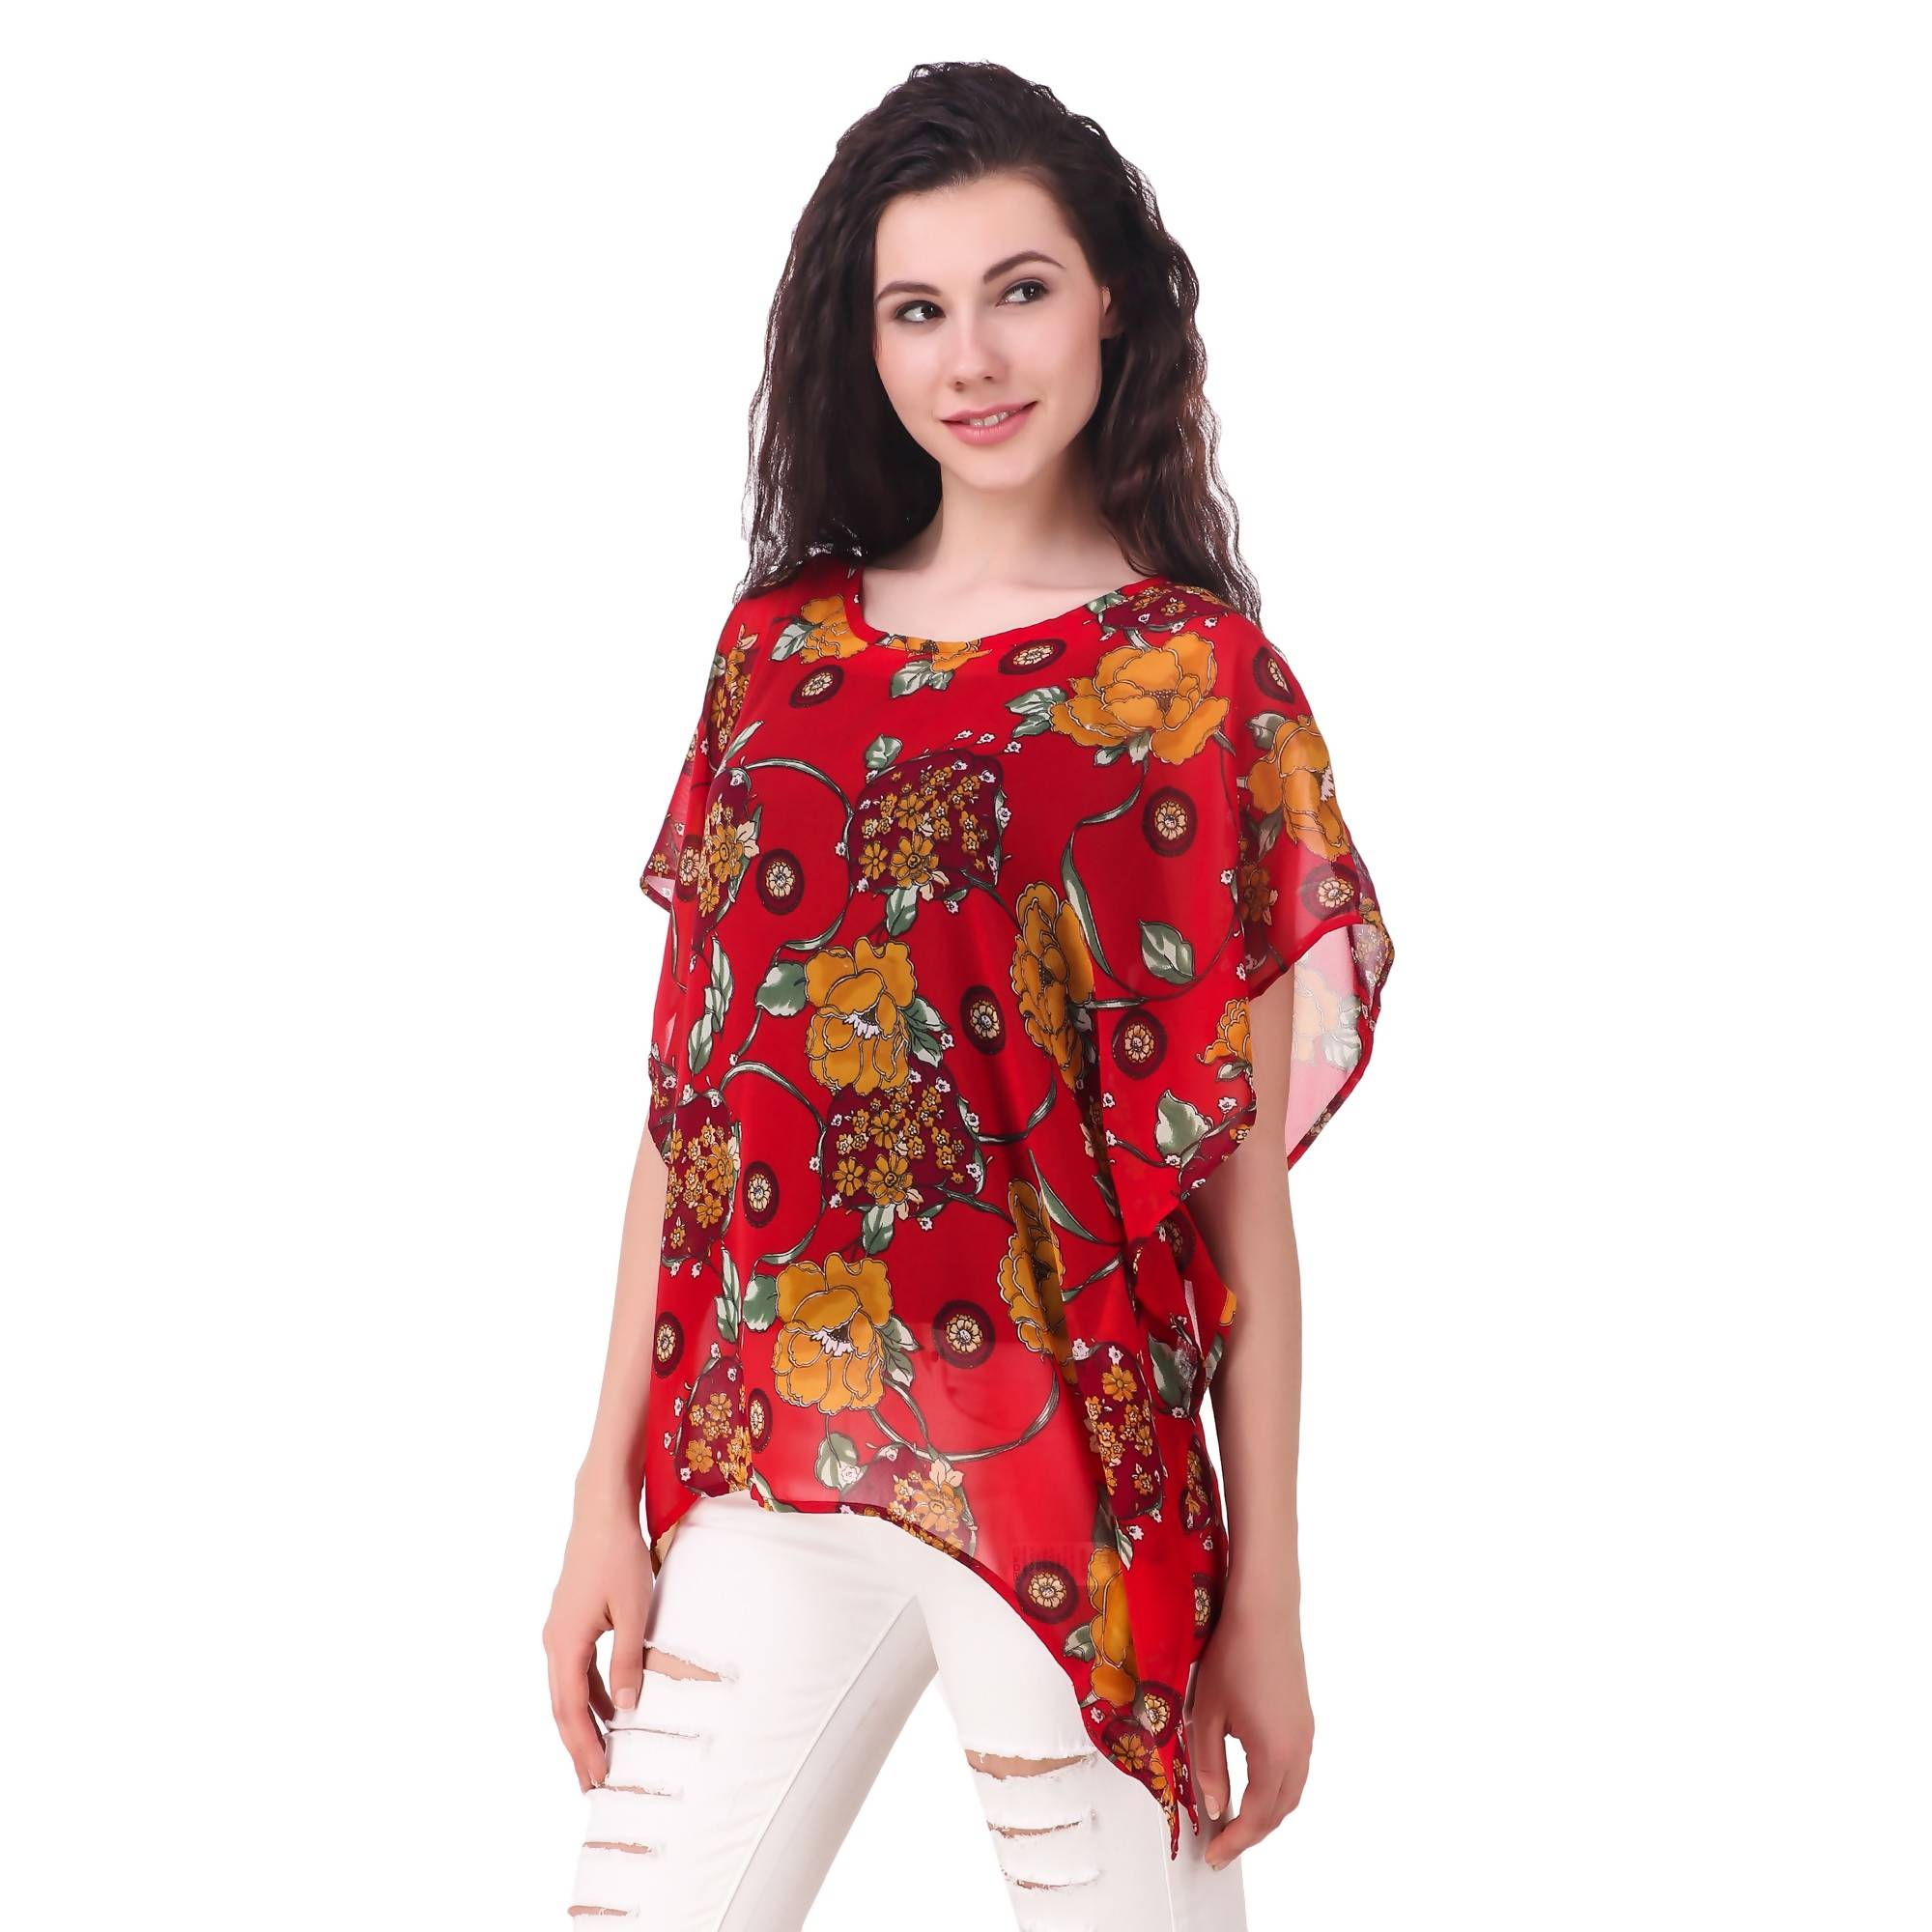 816d904a22d0 ... Fame 16 Printed Women'S Round Neck Red Georgette Flared Floral Printed  Kaftans $ F16-1600182 ...